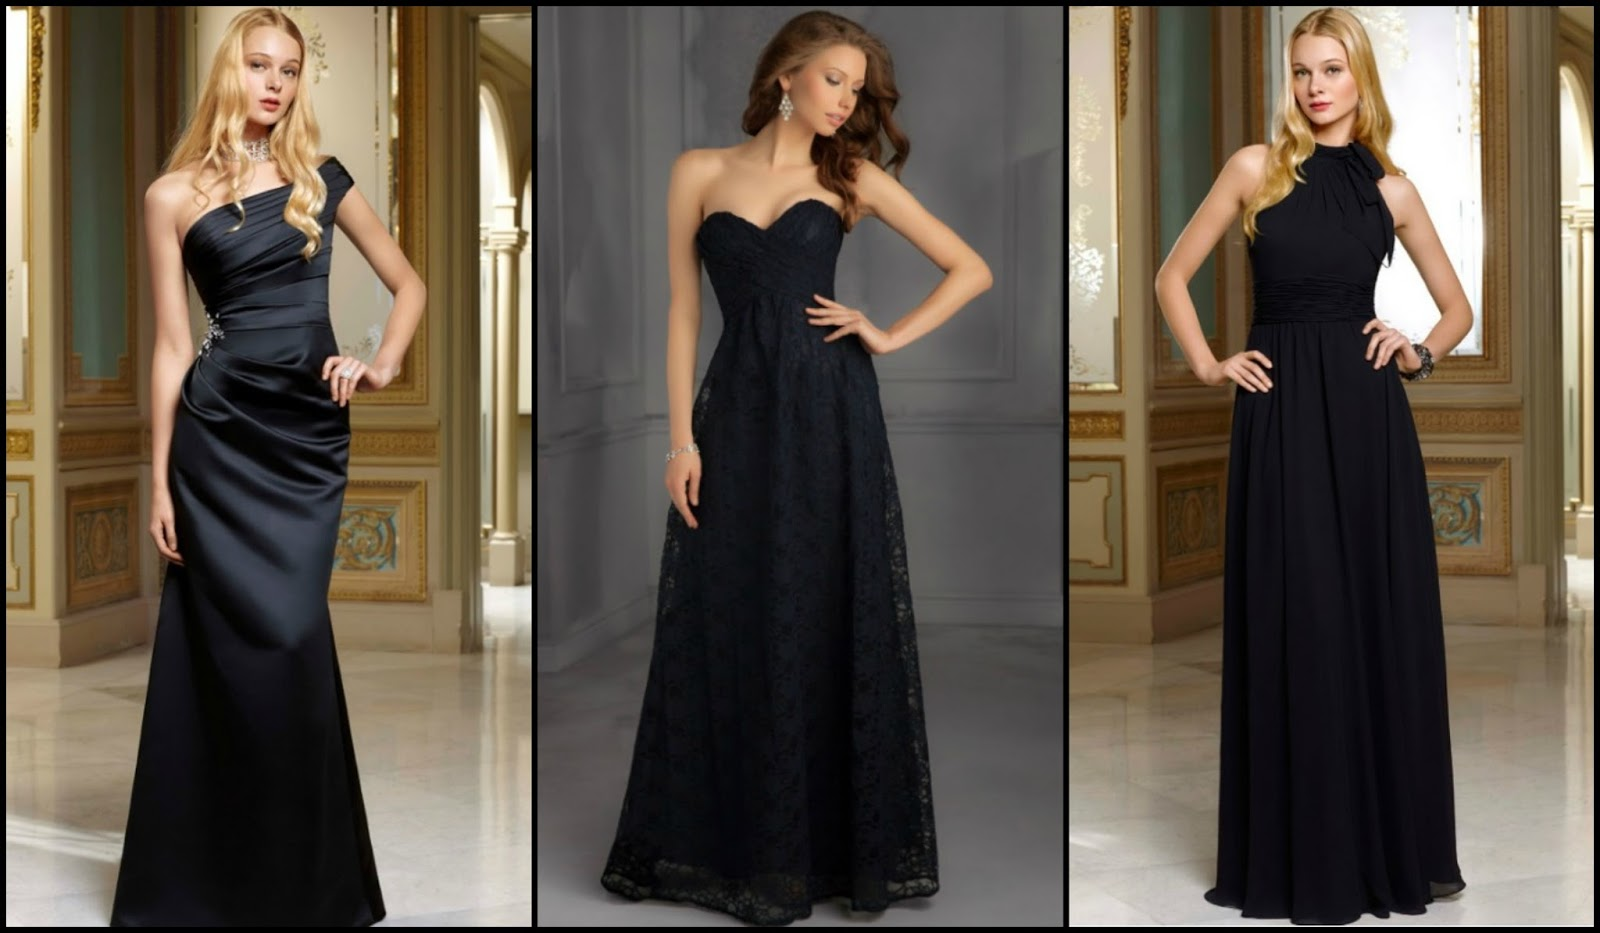 Brides of america online store elegant black bridesmaid dresses that wedding inspired him to begin suggesting this exquisite look to the brides that came into our miami bridal boutique many of them also loved the air of ombrellifo Image collections